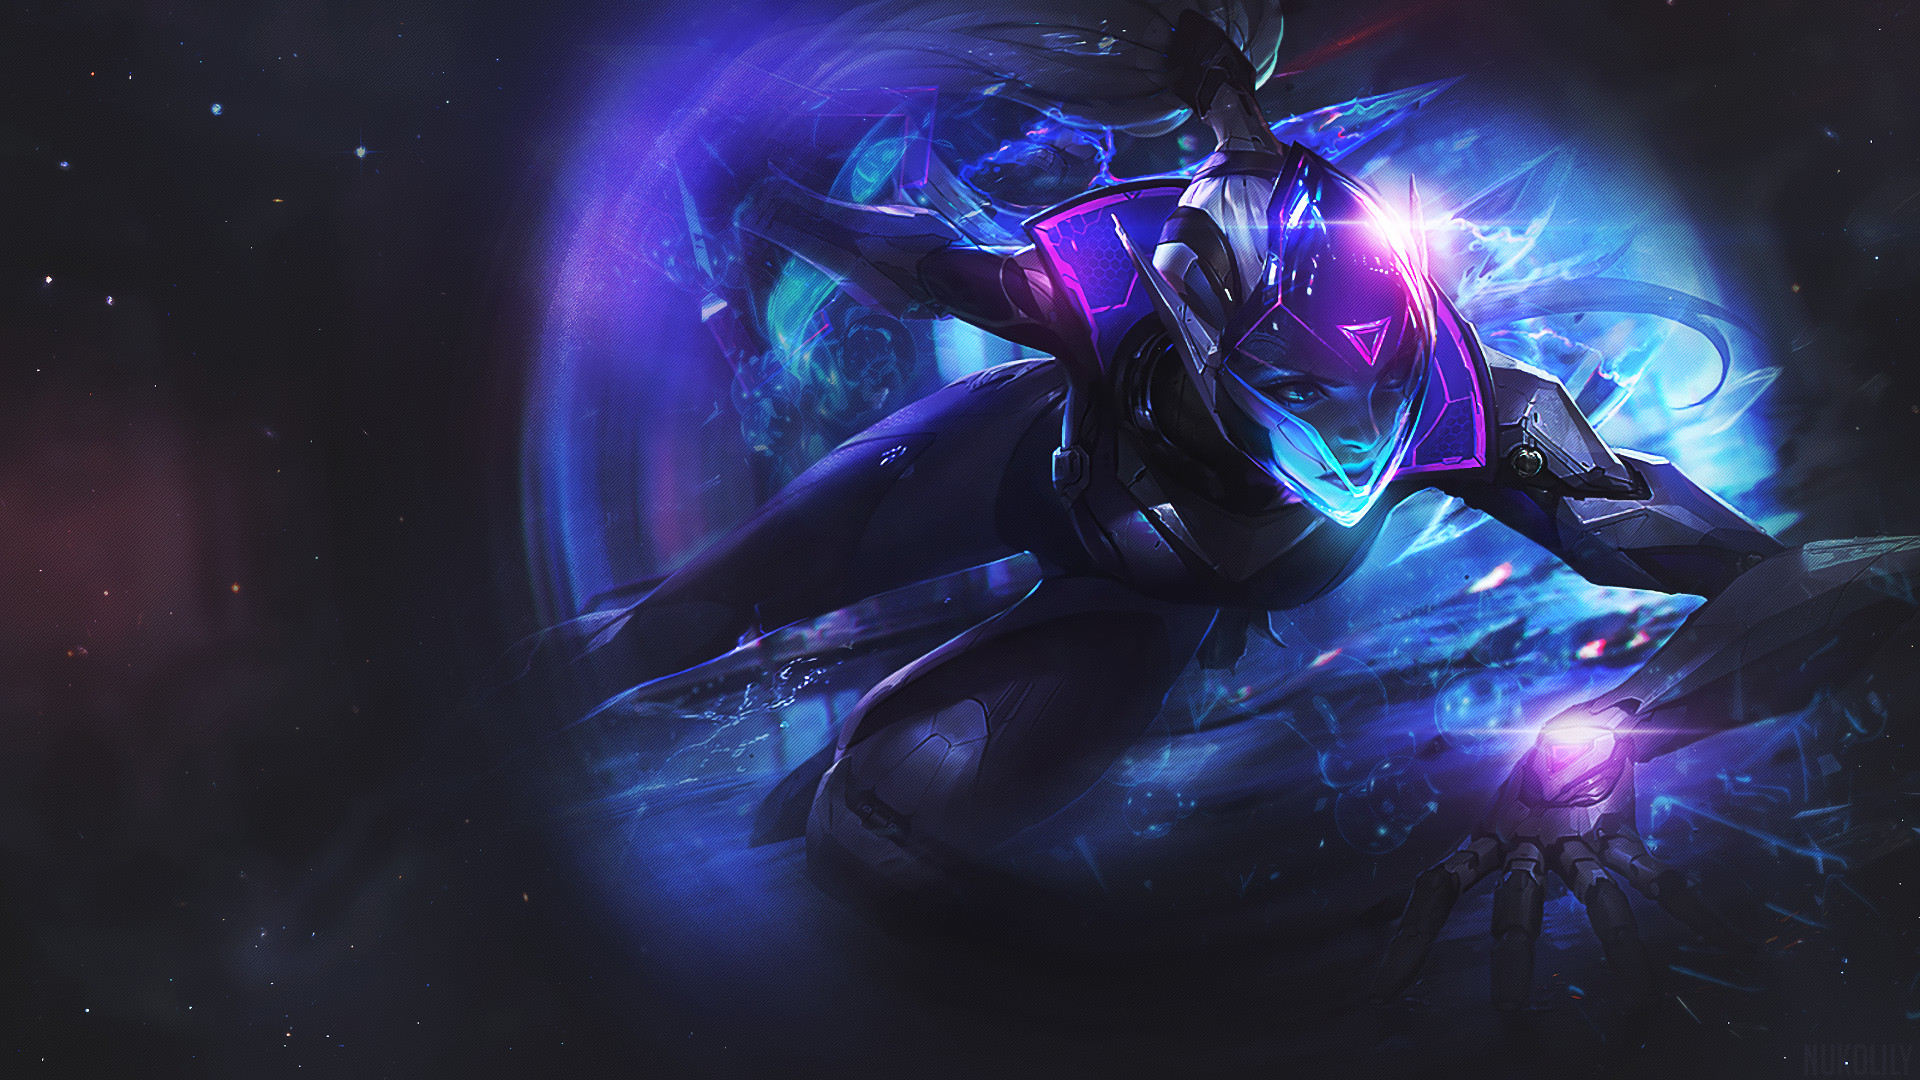 1920x1080 PROJECT Vayne by nukolily HD Wallpaper Background Fan Art Artwork League of Legends  lol